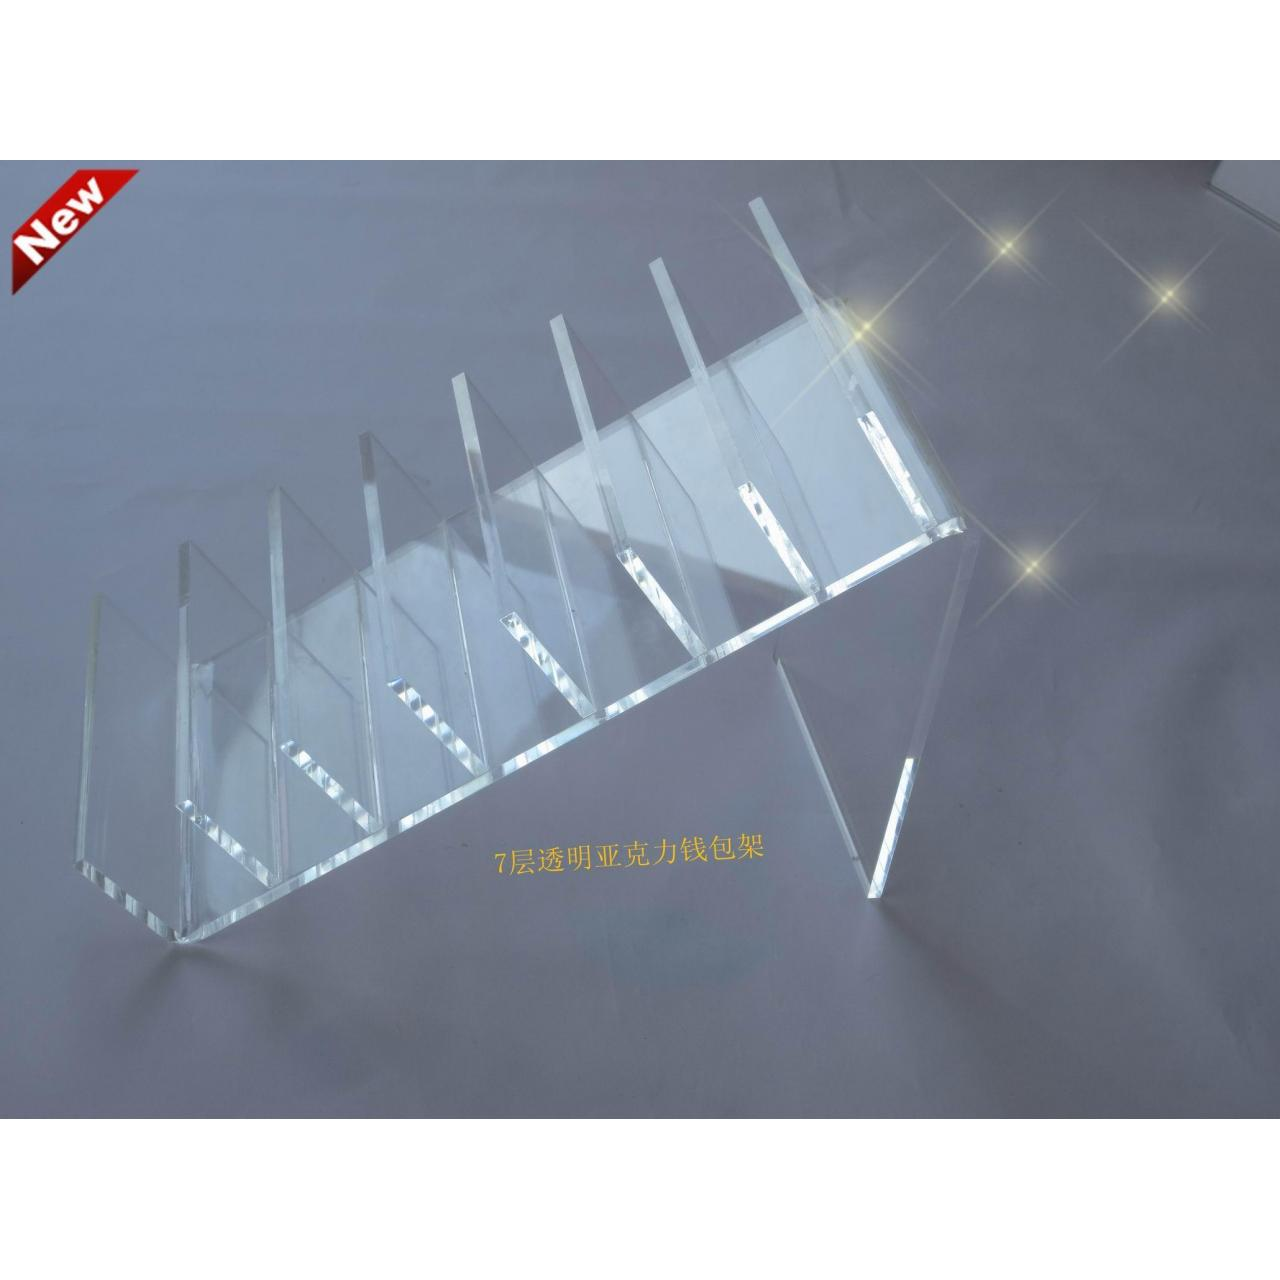 ACRYLIC STORE FIXTURES YK-0207 Manufactures